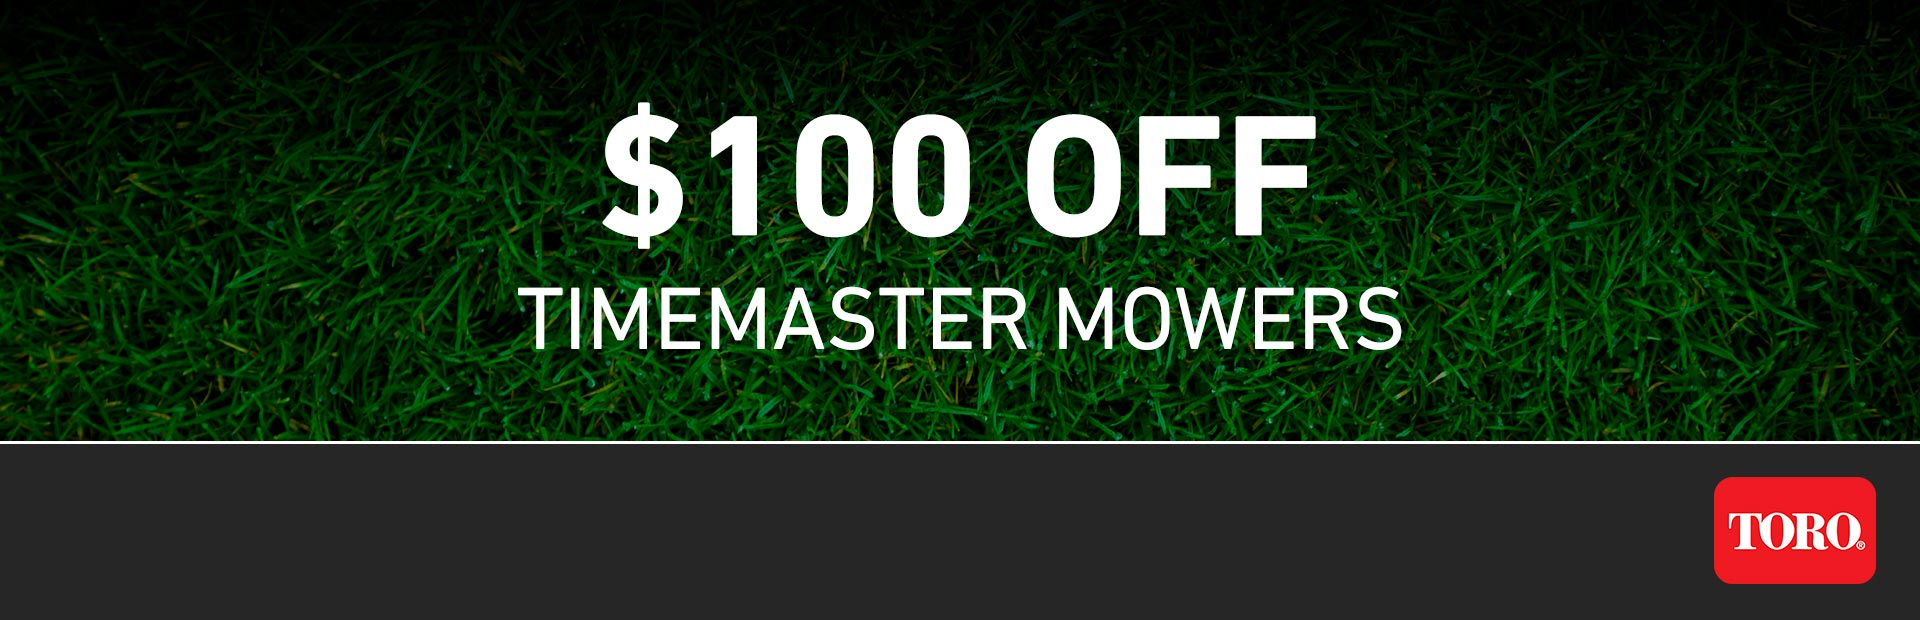 Toro: RE - $100 Off Select TimeMaster Mowers